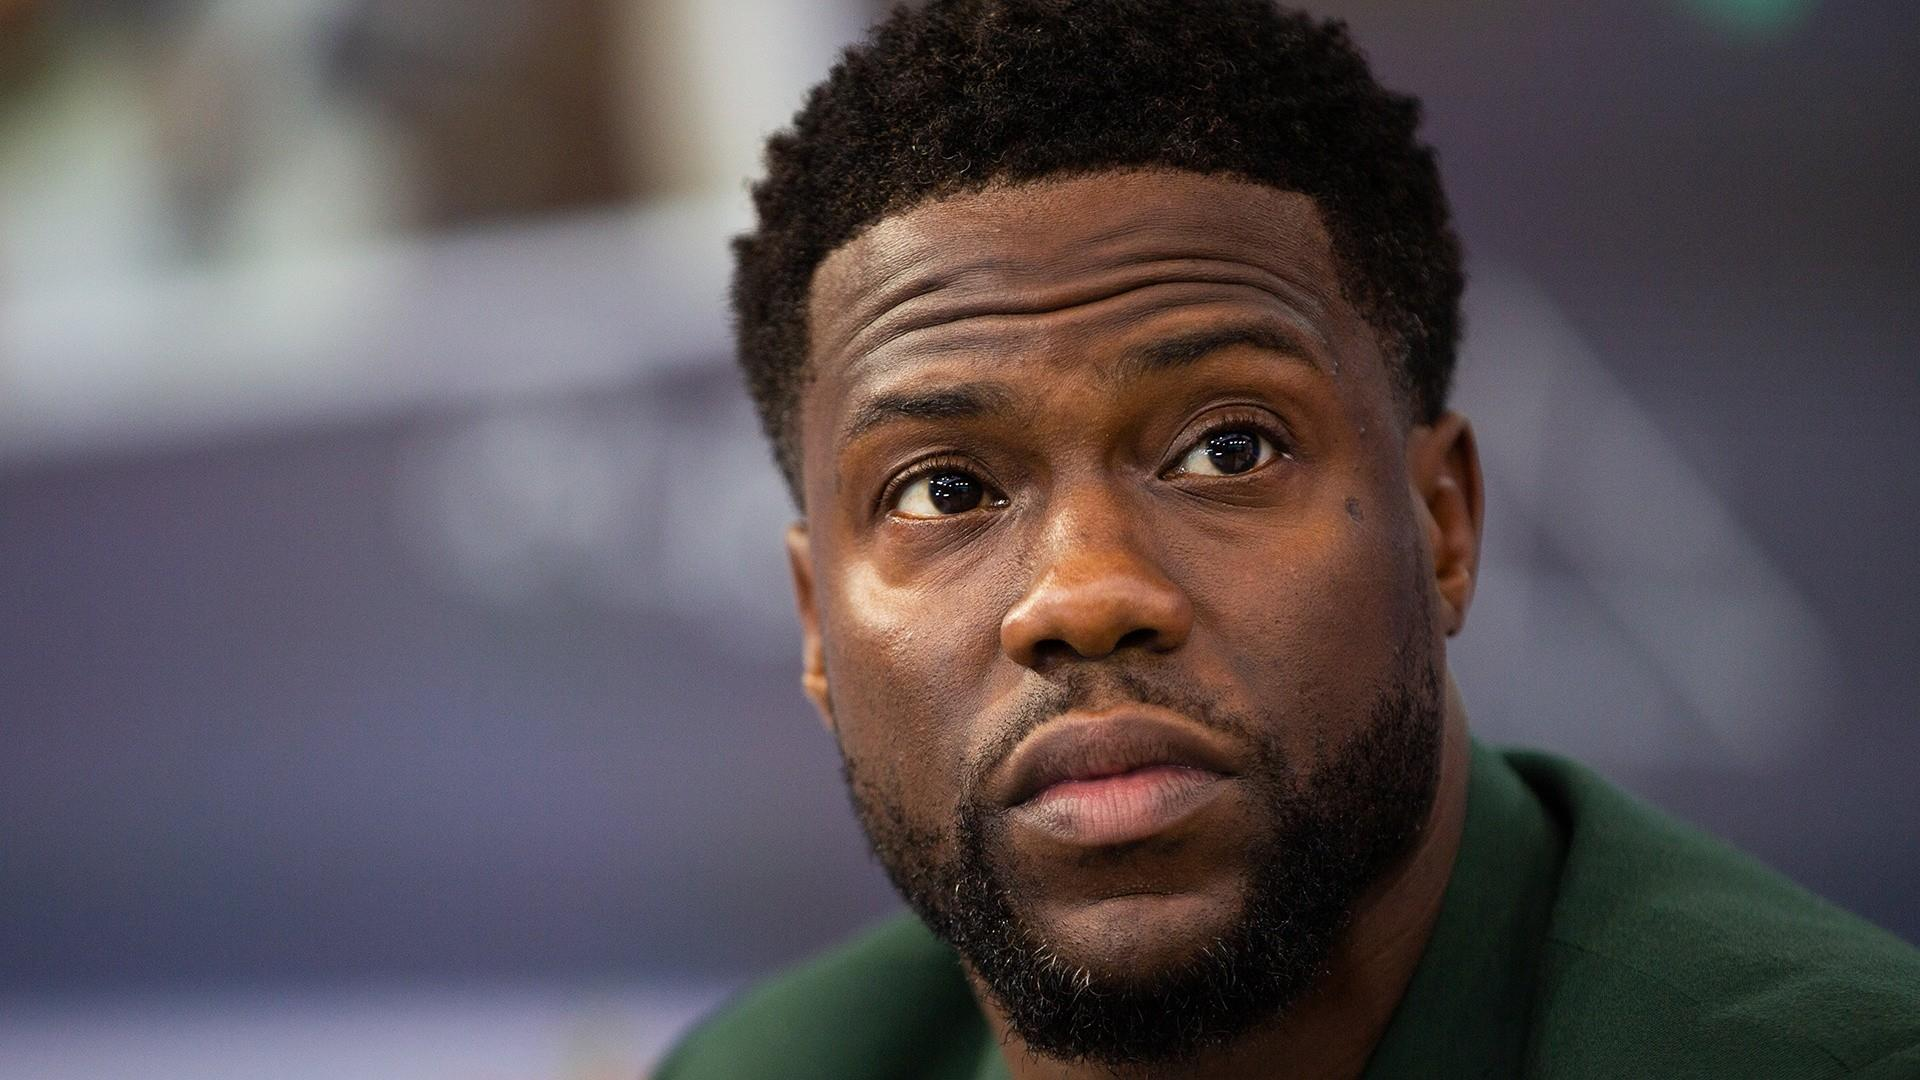 Kevin Hart's Car Accident Was Devastating: See Aftermath Photos